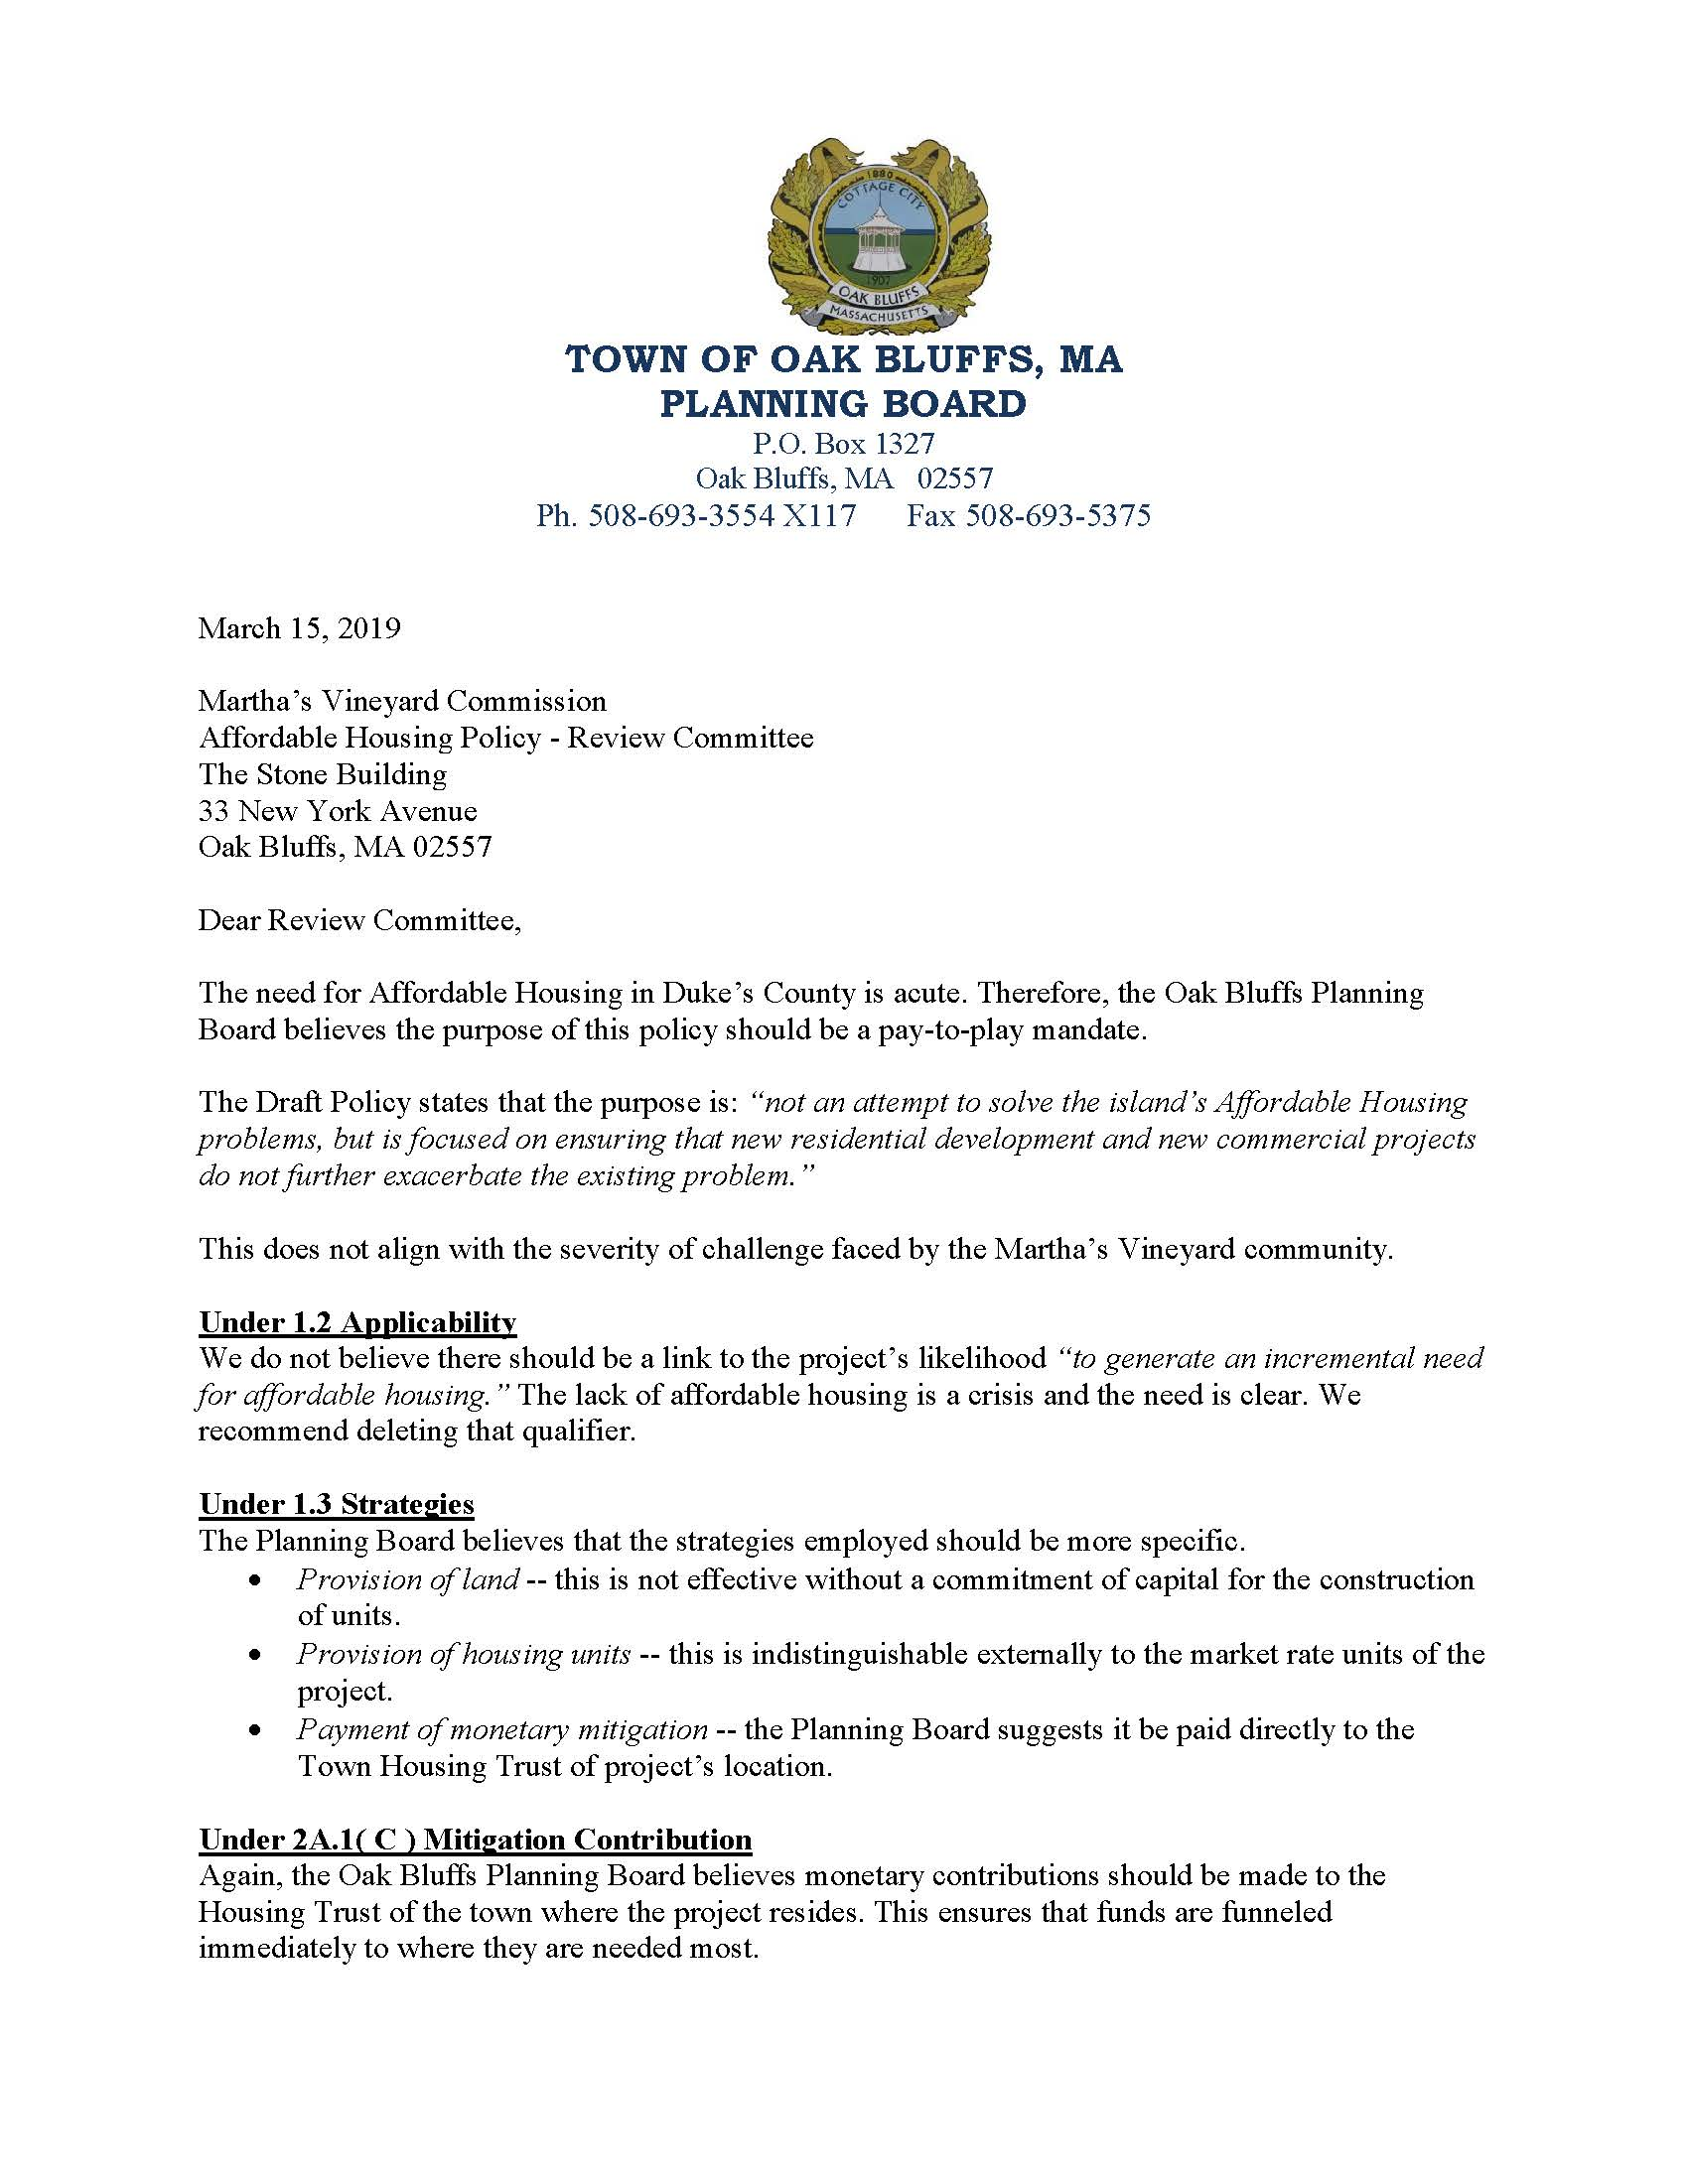 PB Letter to MVC re Housing Mitigation Policy Mar 15 2019_Page_1 Opens in new window